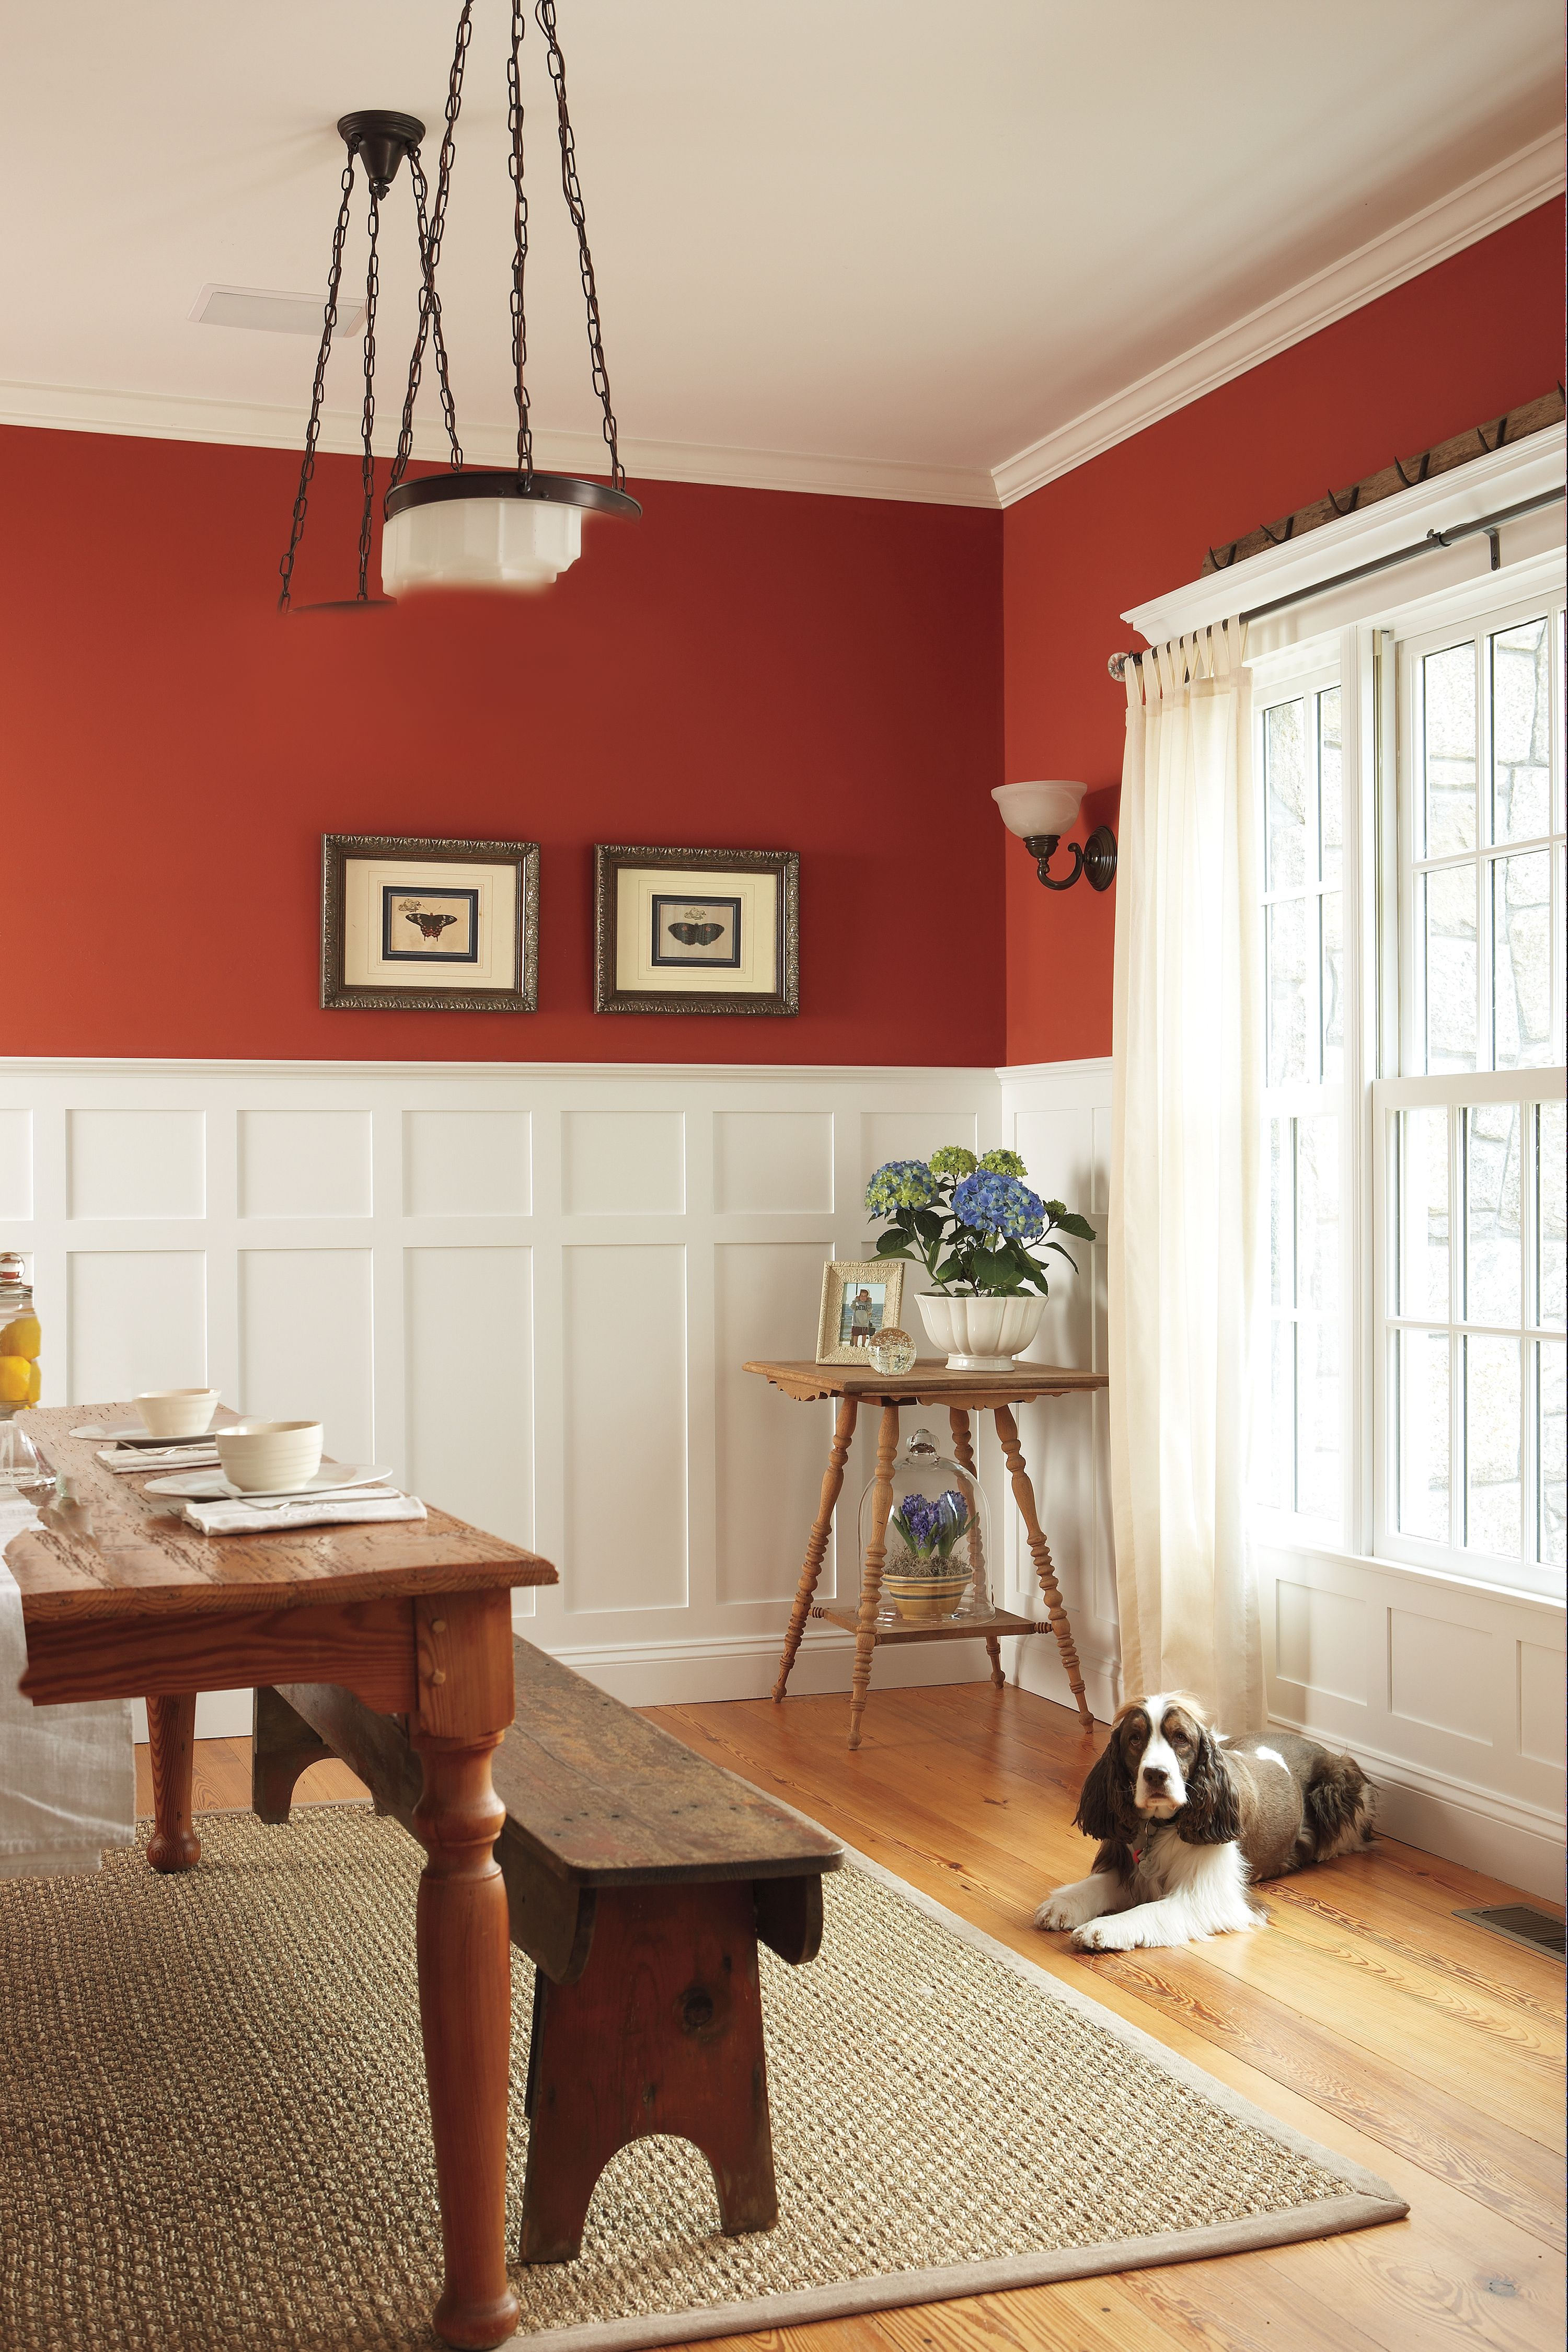 All About Wainscoting Dining Room Wainscoting Wainscoting